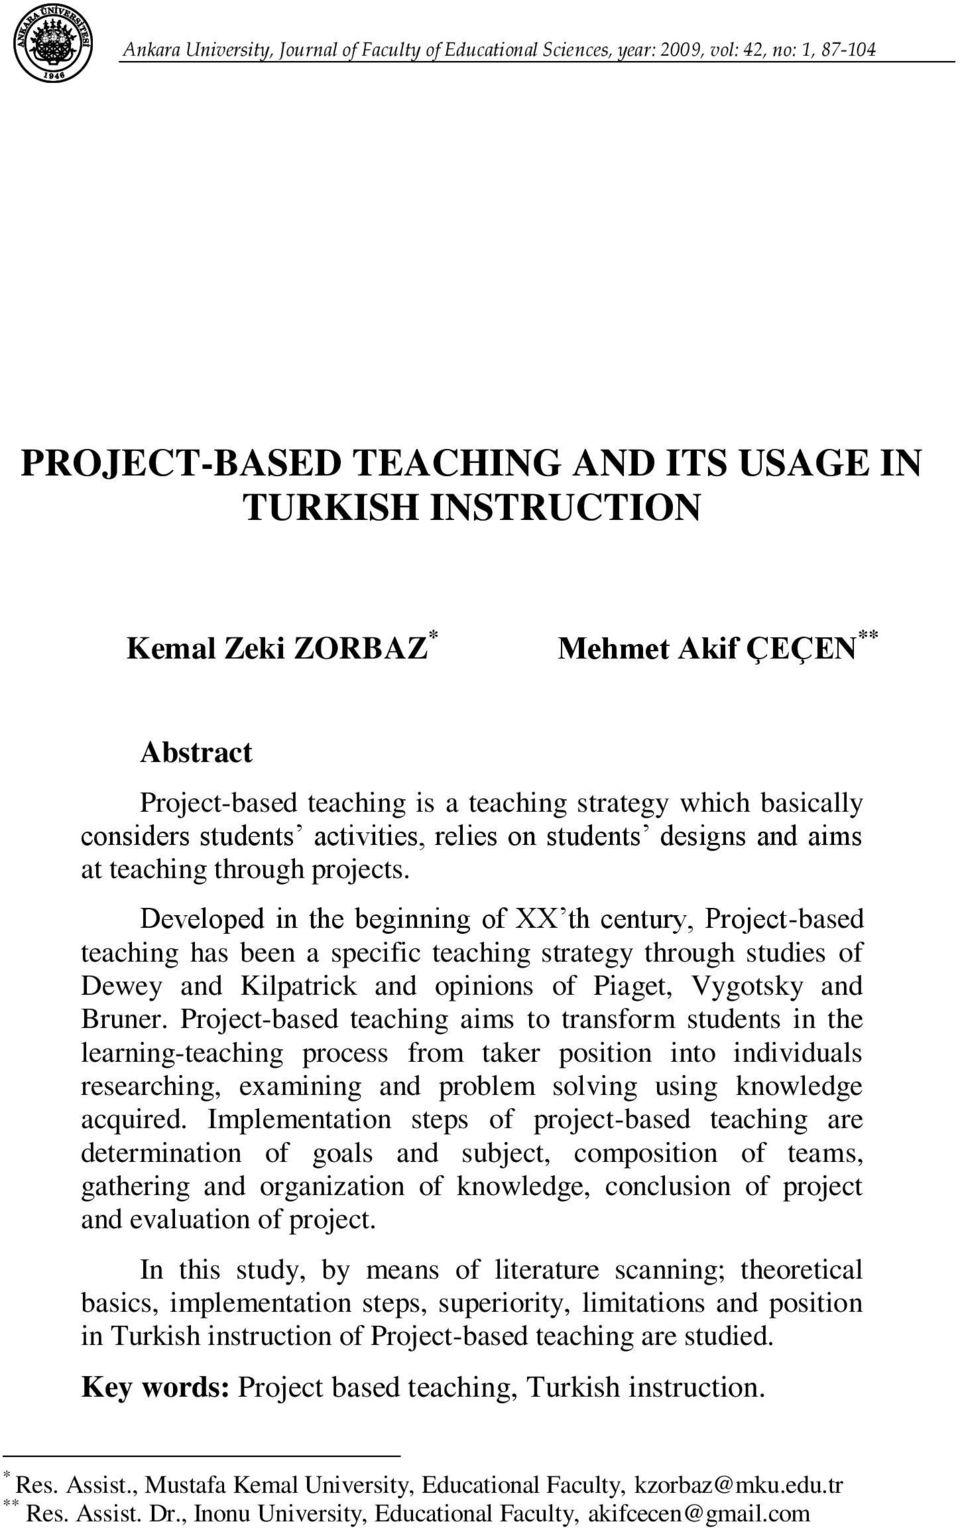 Developed in the beginning of XX th century, Project-based teaching has been a specific teaching strategy through studies of Dewey and Kilpatrick and opinions of Piaget, Vygotsky and Bruner.